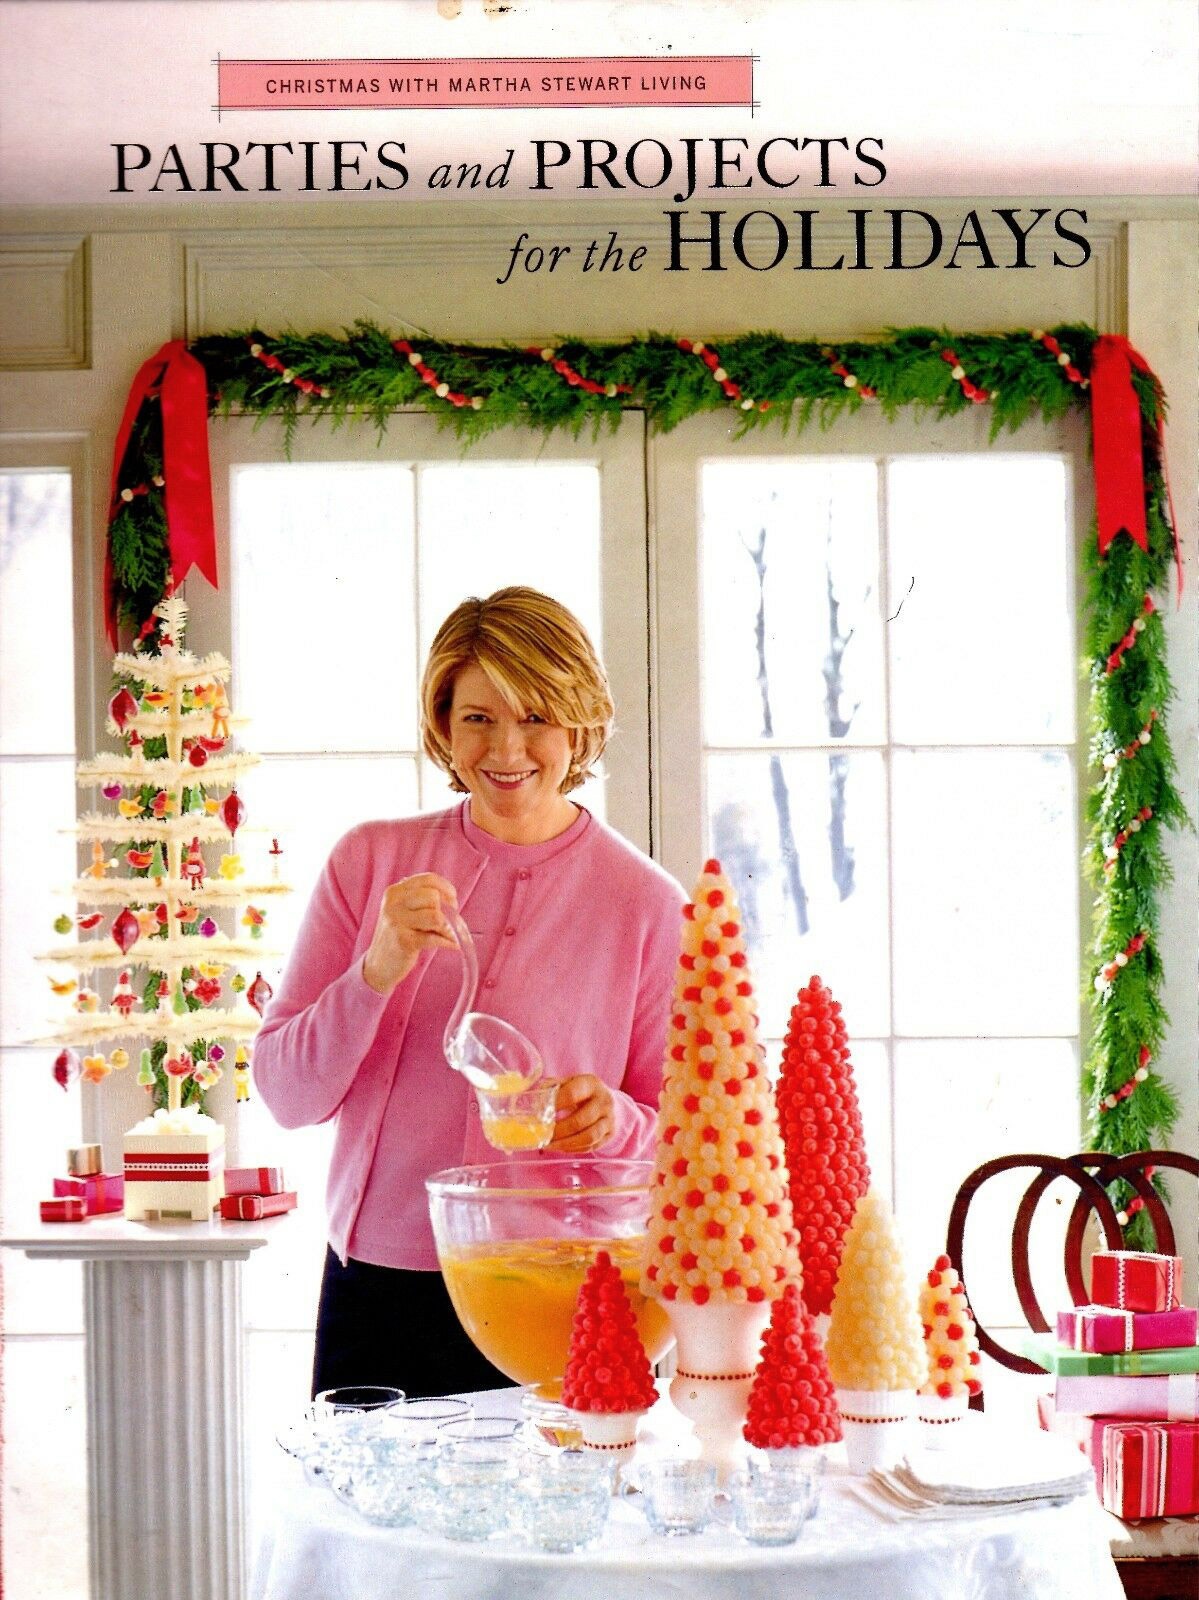 Christmas with Martha Stewart Living: Parties and Projects for the Holidays (Volume 4)